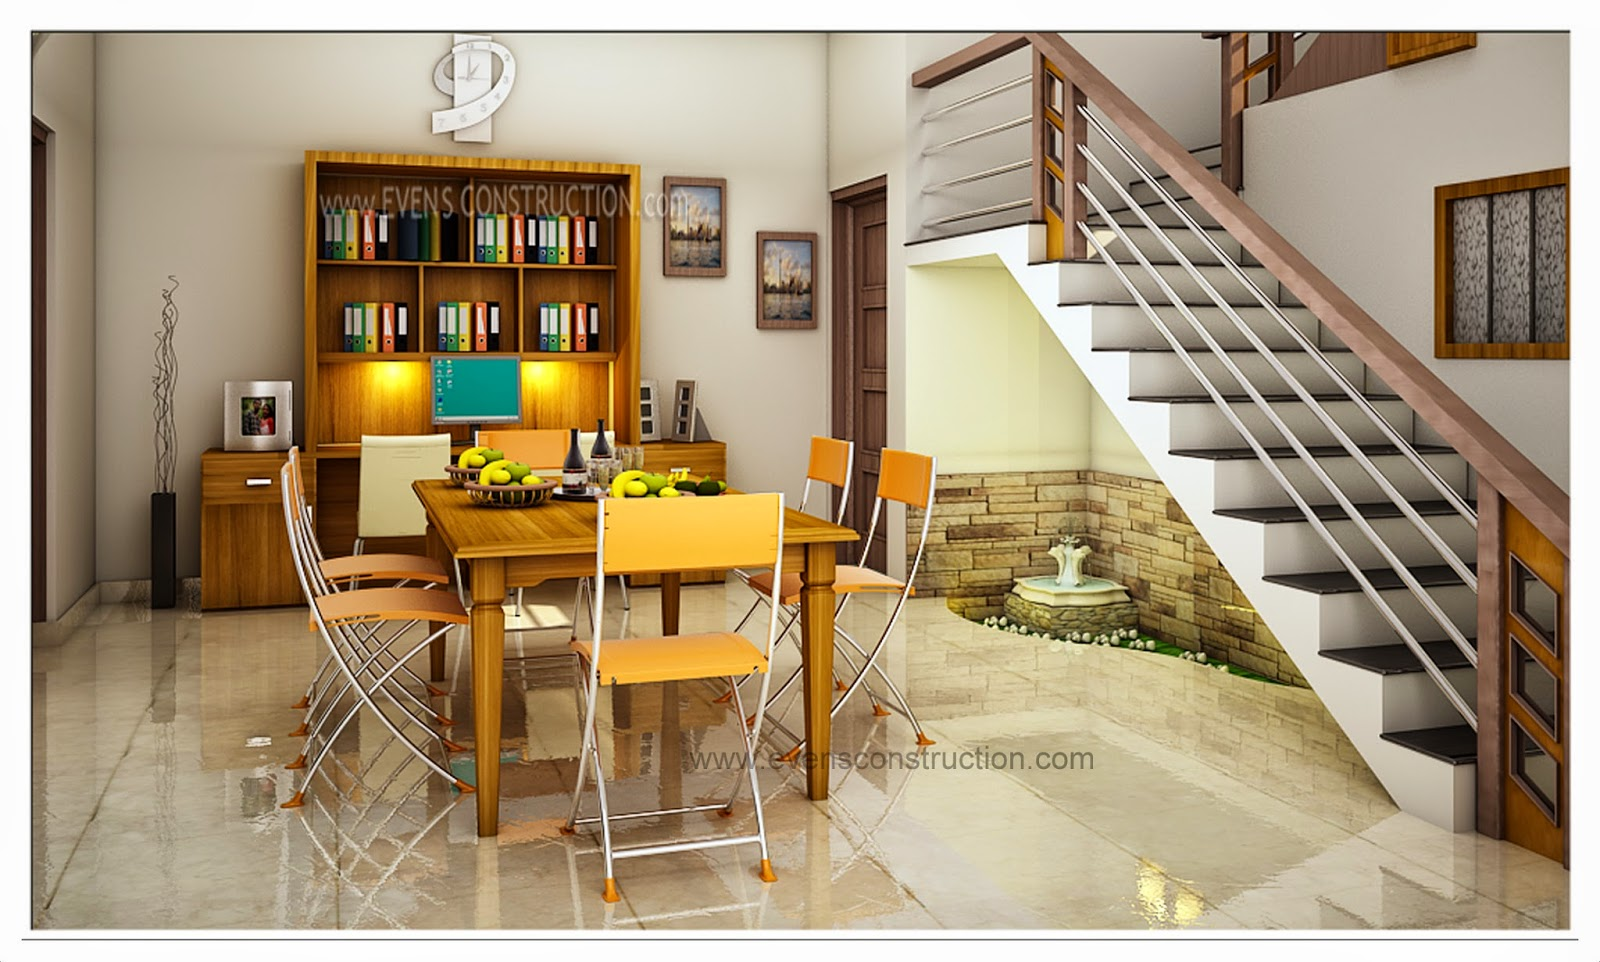 Evens construction pvt ltd beautiful interior design for for House dining hall design